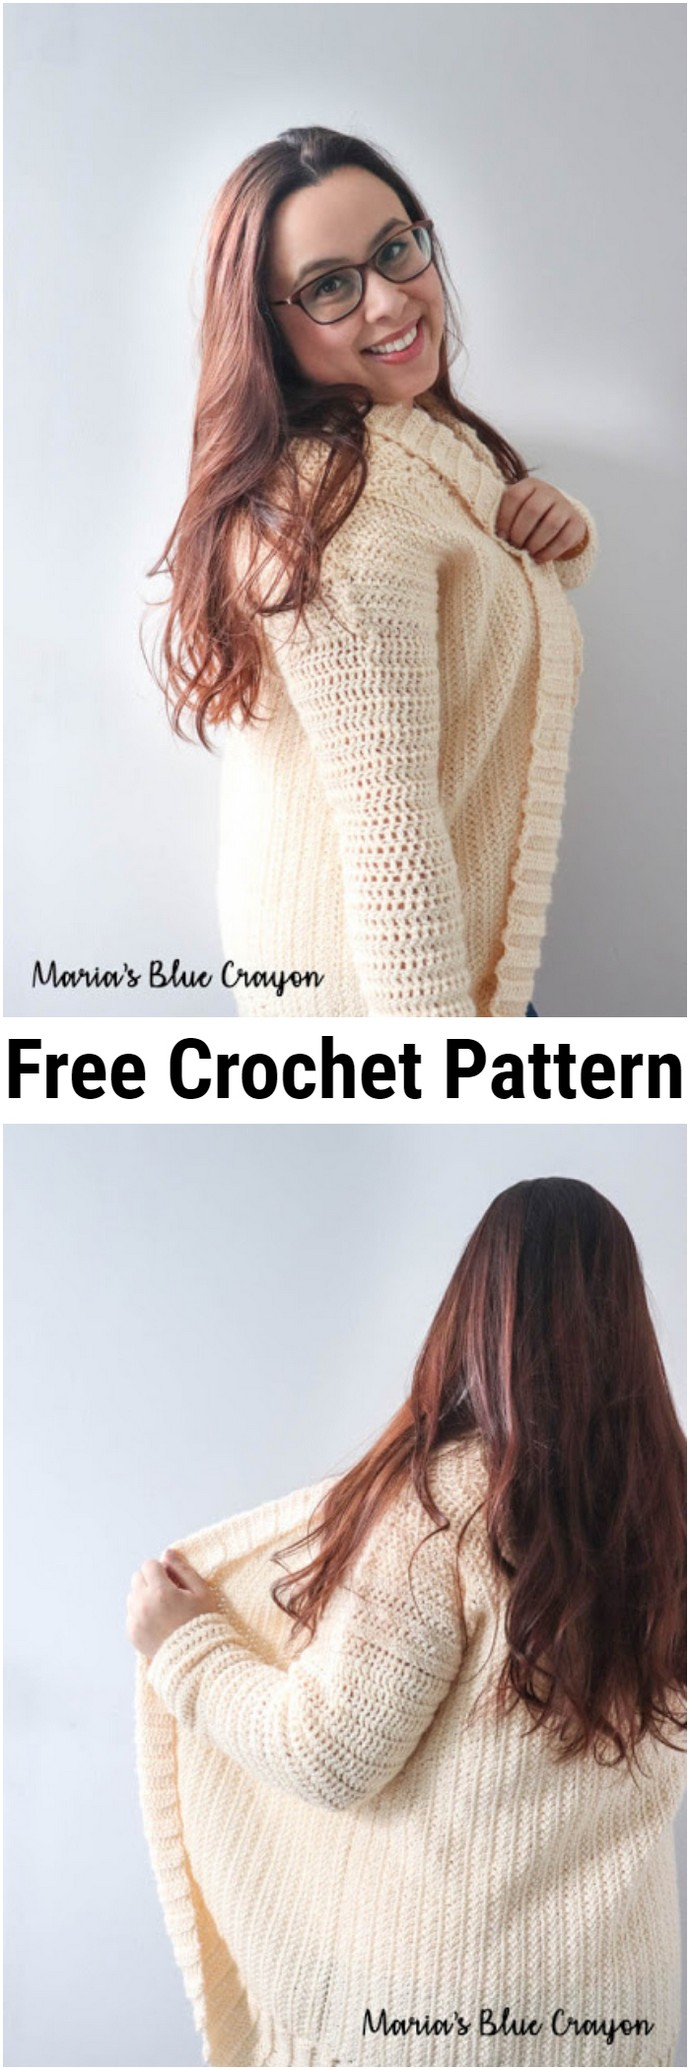 Cardigan Shrug Free Crochet Pattern